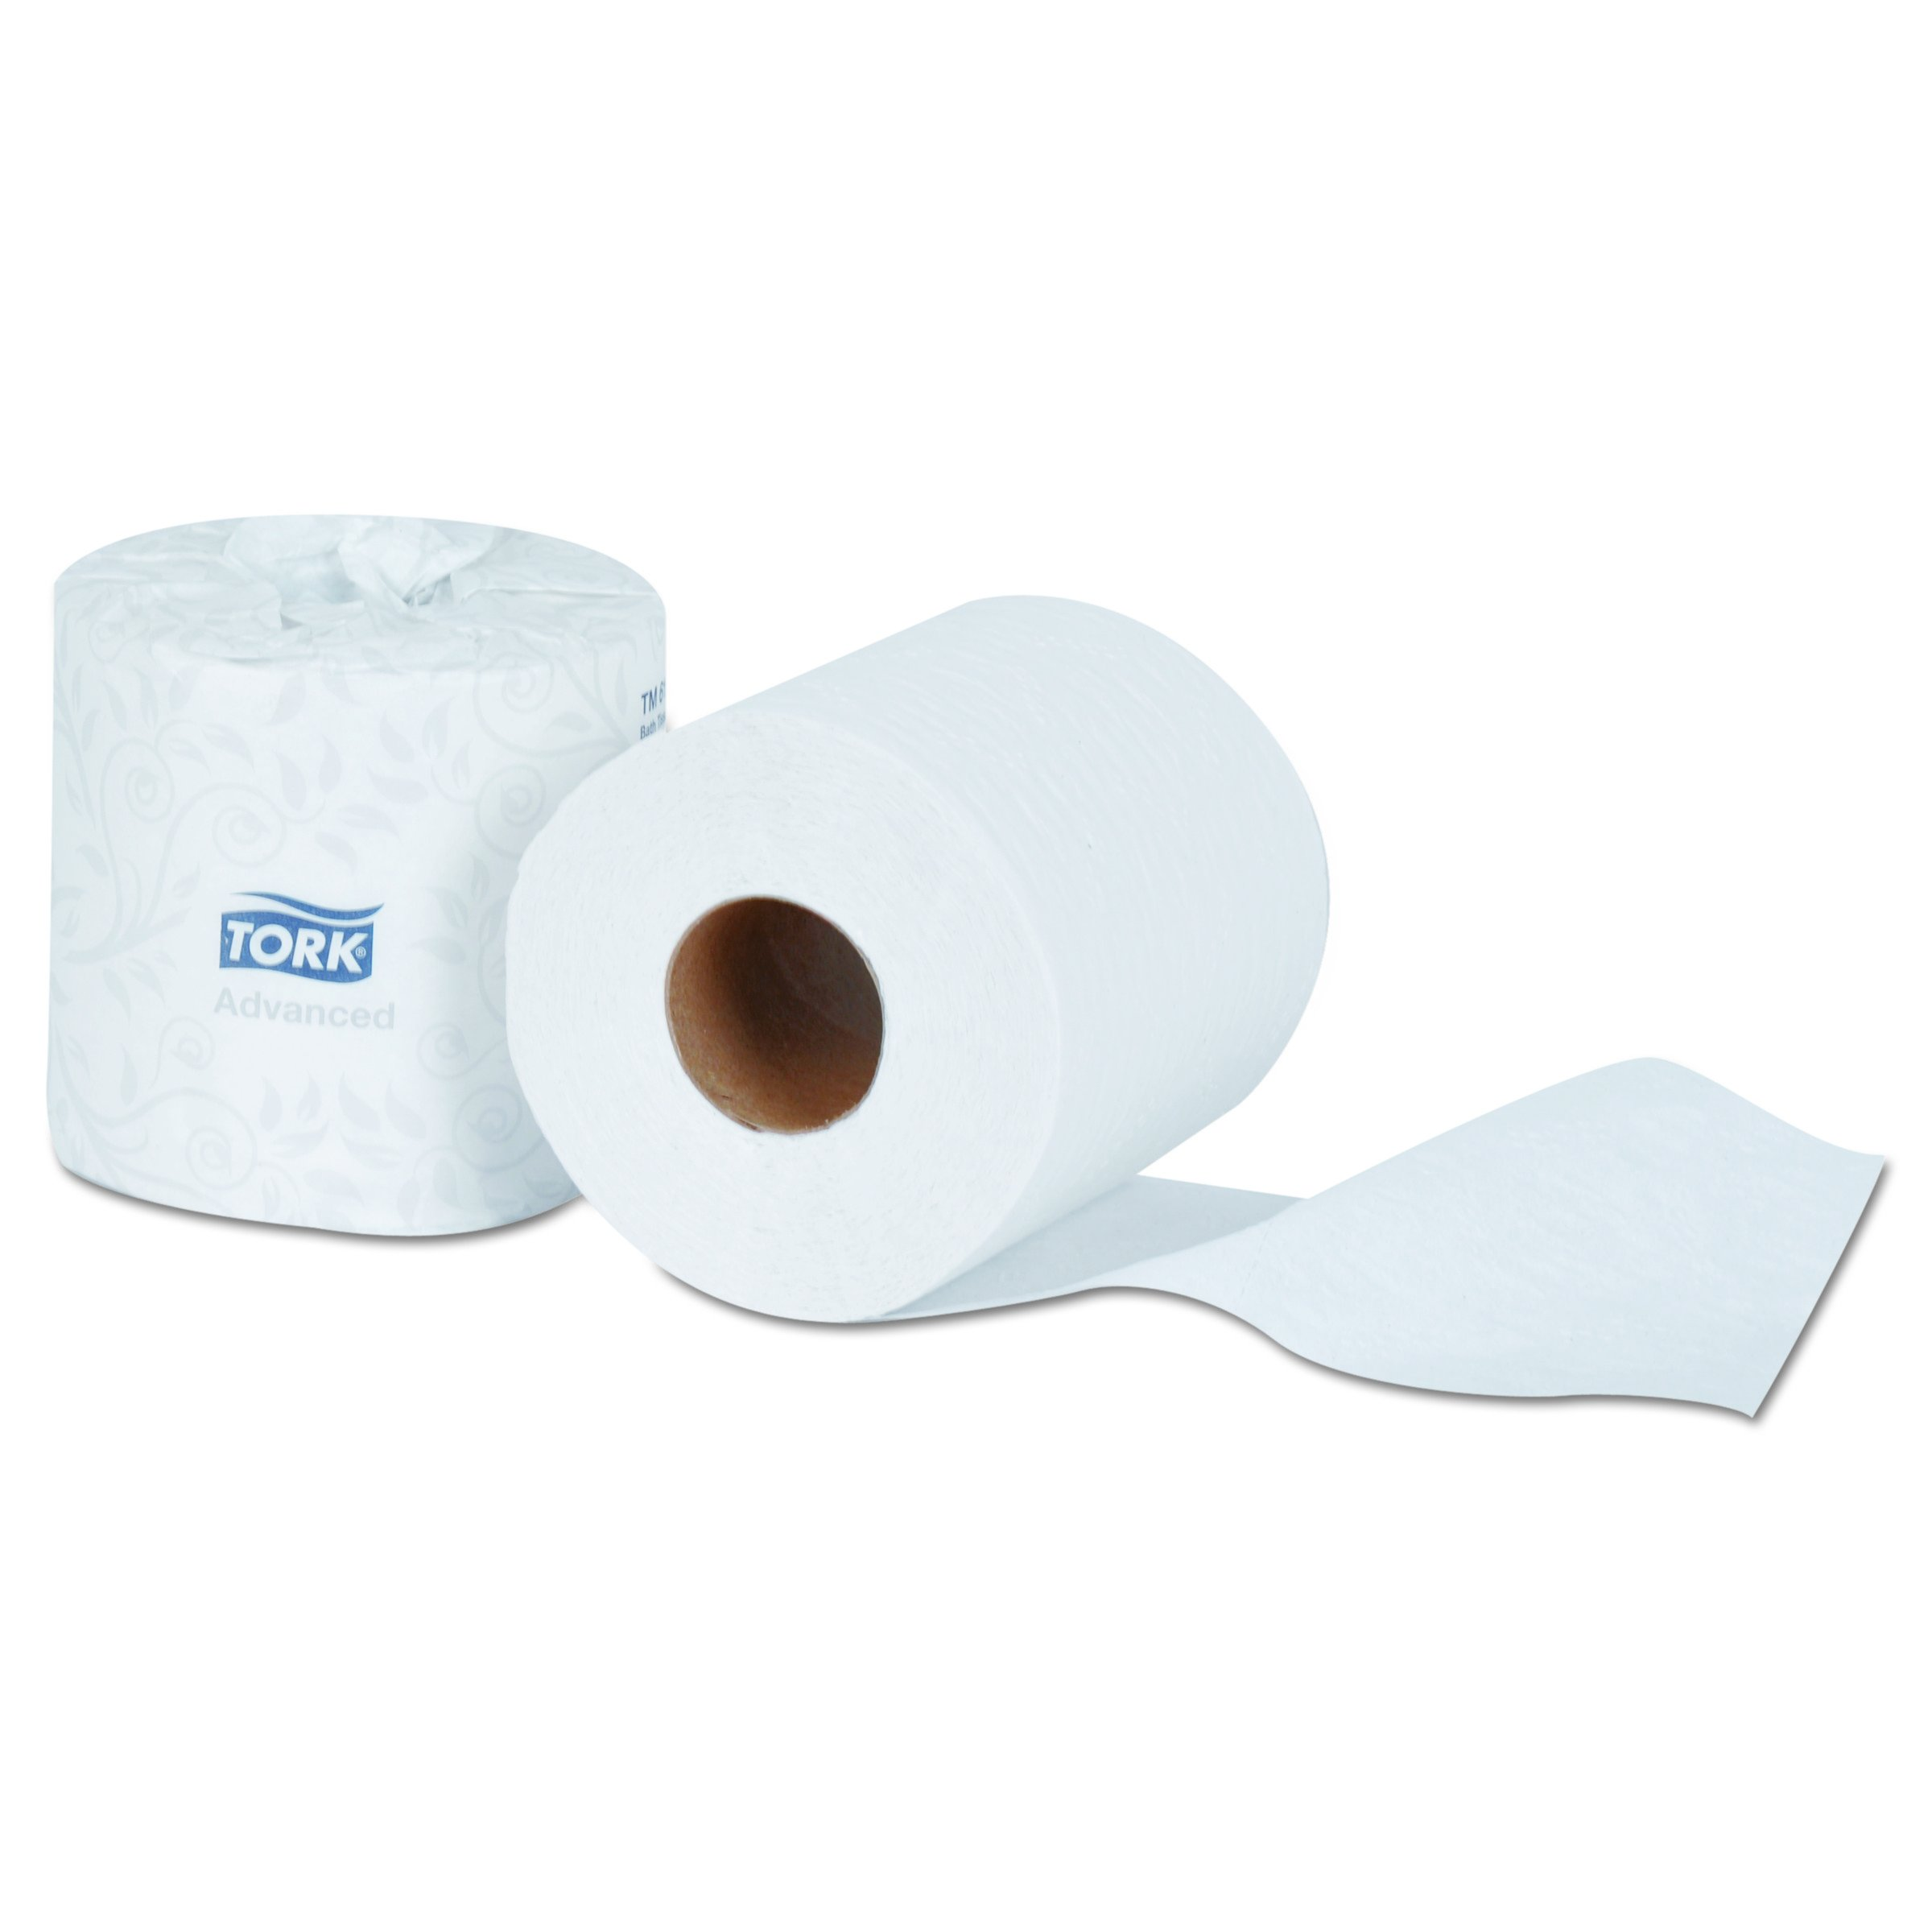 Tork TM6120S Advanced 2-Ply Bath Tissue, 2-Ply, White, 500 Sheets (Case of 96 Rolls)